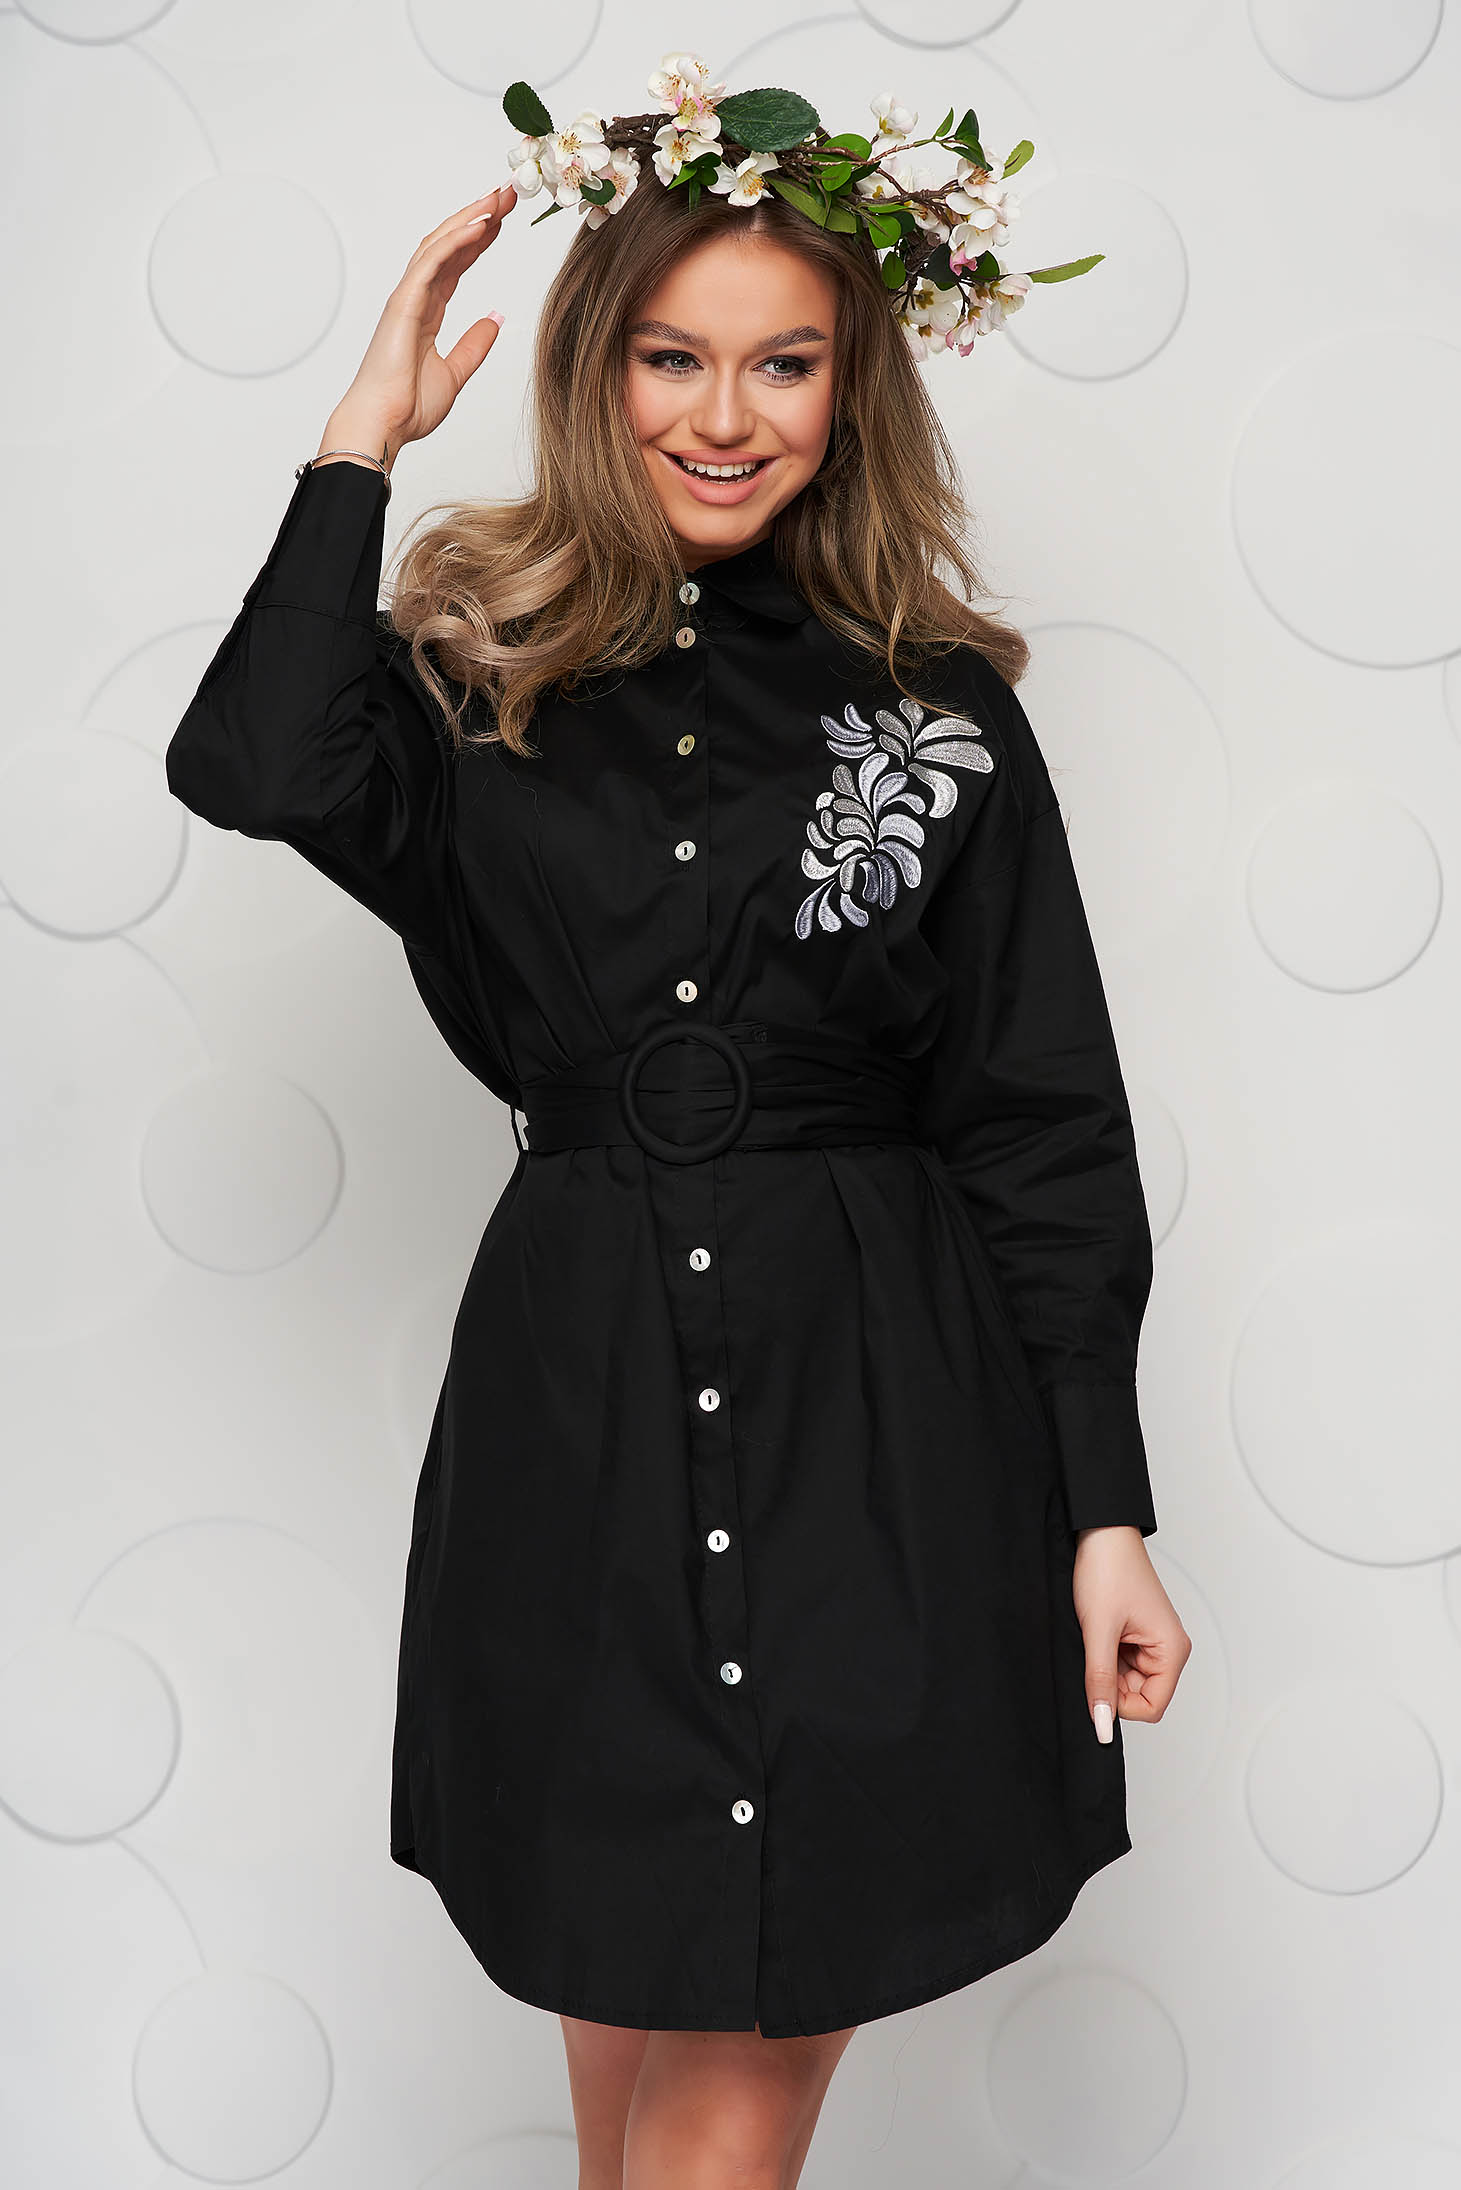 Black dress poplin, thin cotton accessorized with belt embroidered